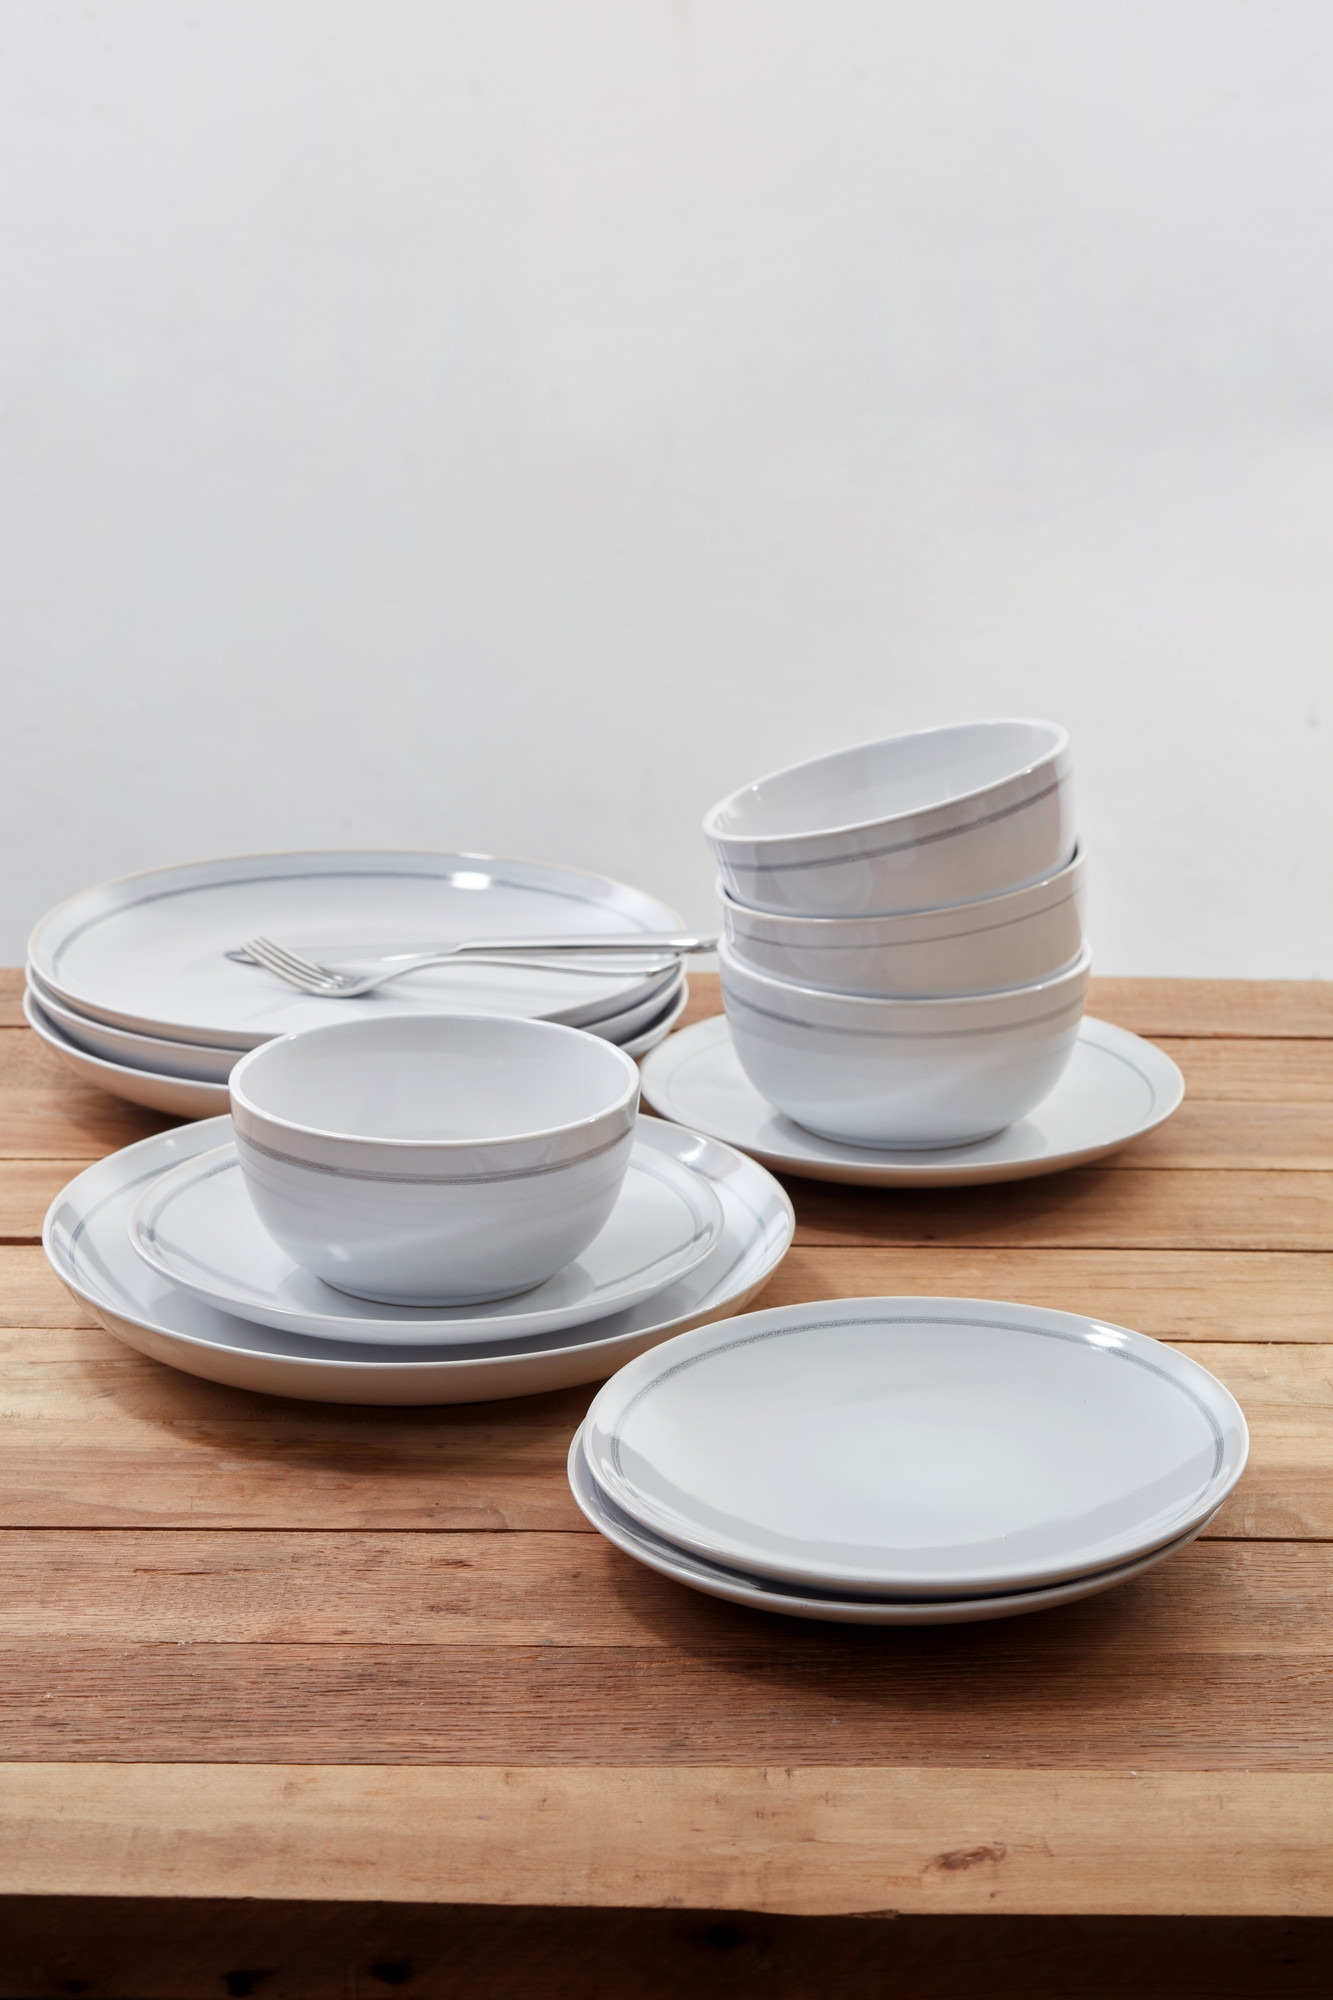 Set vesela Patine Stoneware, White, Jamie Oliver, 12 piese imagine